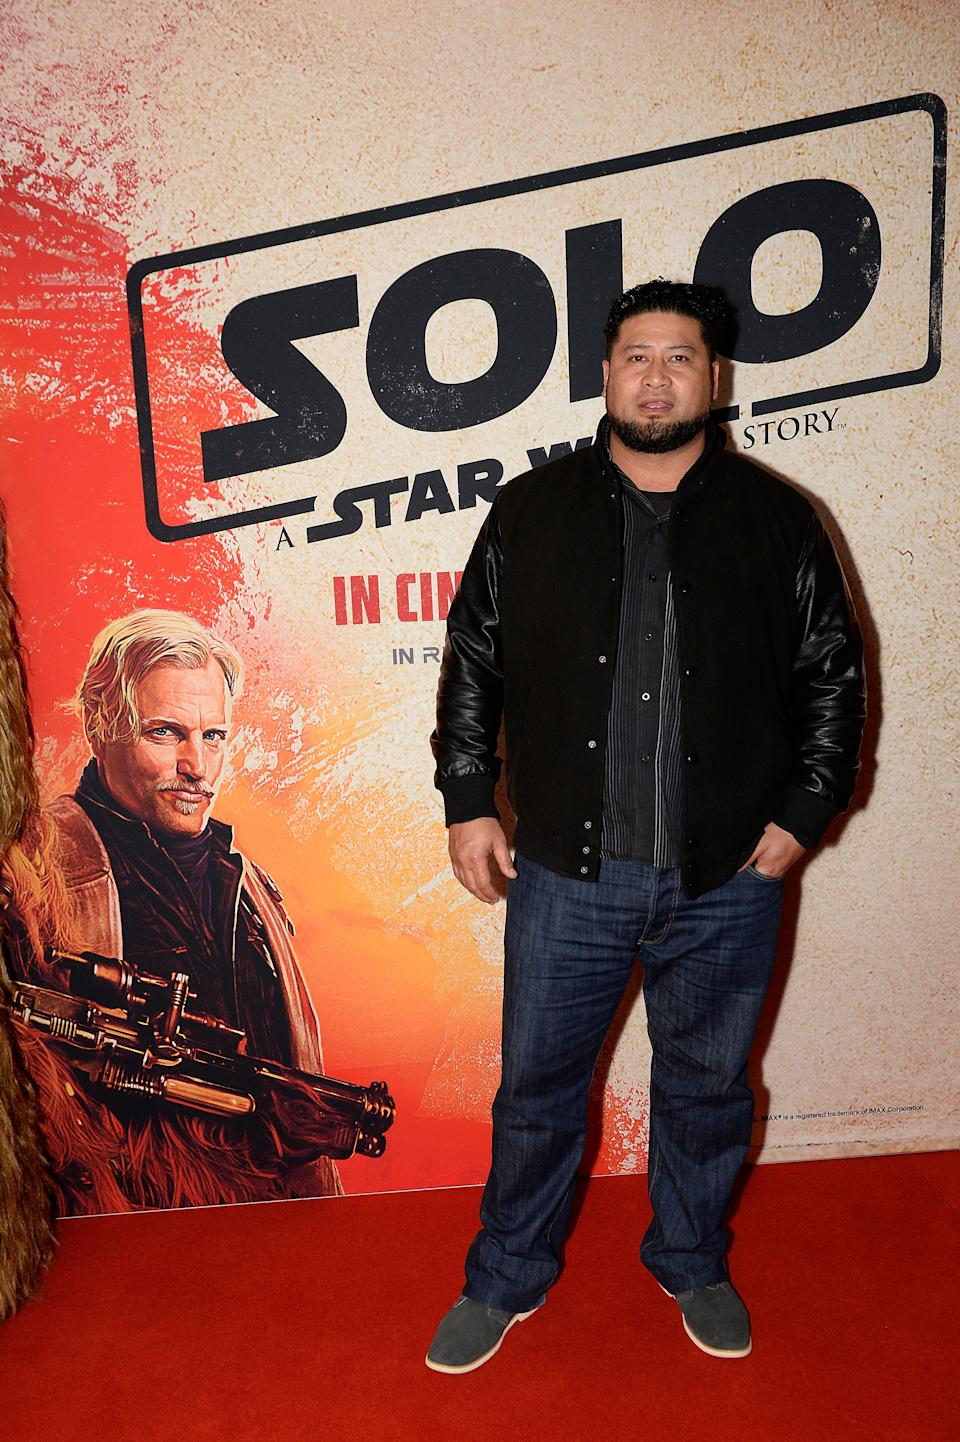 SYDNEY, AUSTRALIA - MAY 17:  John Tui attends the Solo: A Star Wars Story Screening on May 17, 2018 in Sydney, Australia.  (Photo by Cassandra Hannagan/Getty Images for Disney)